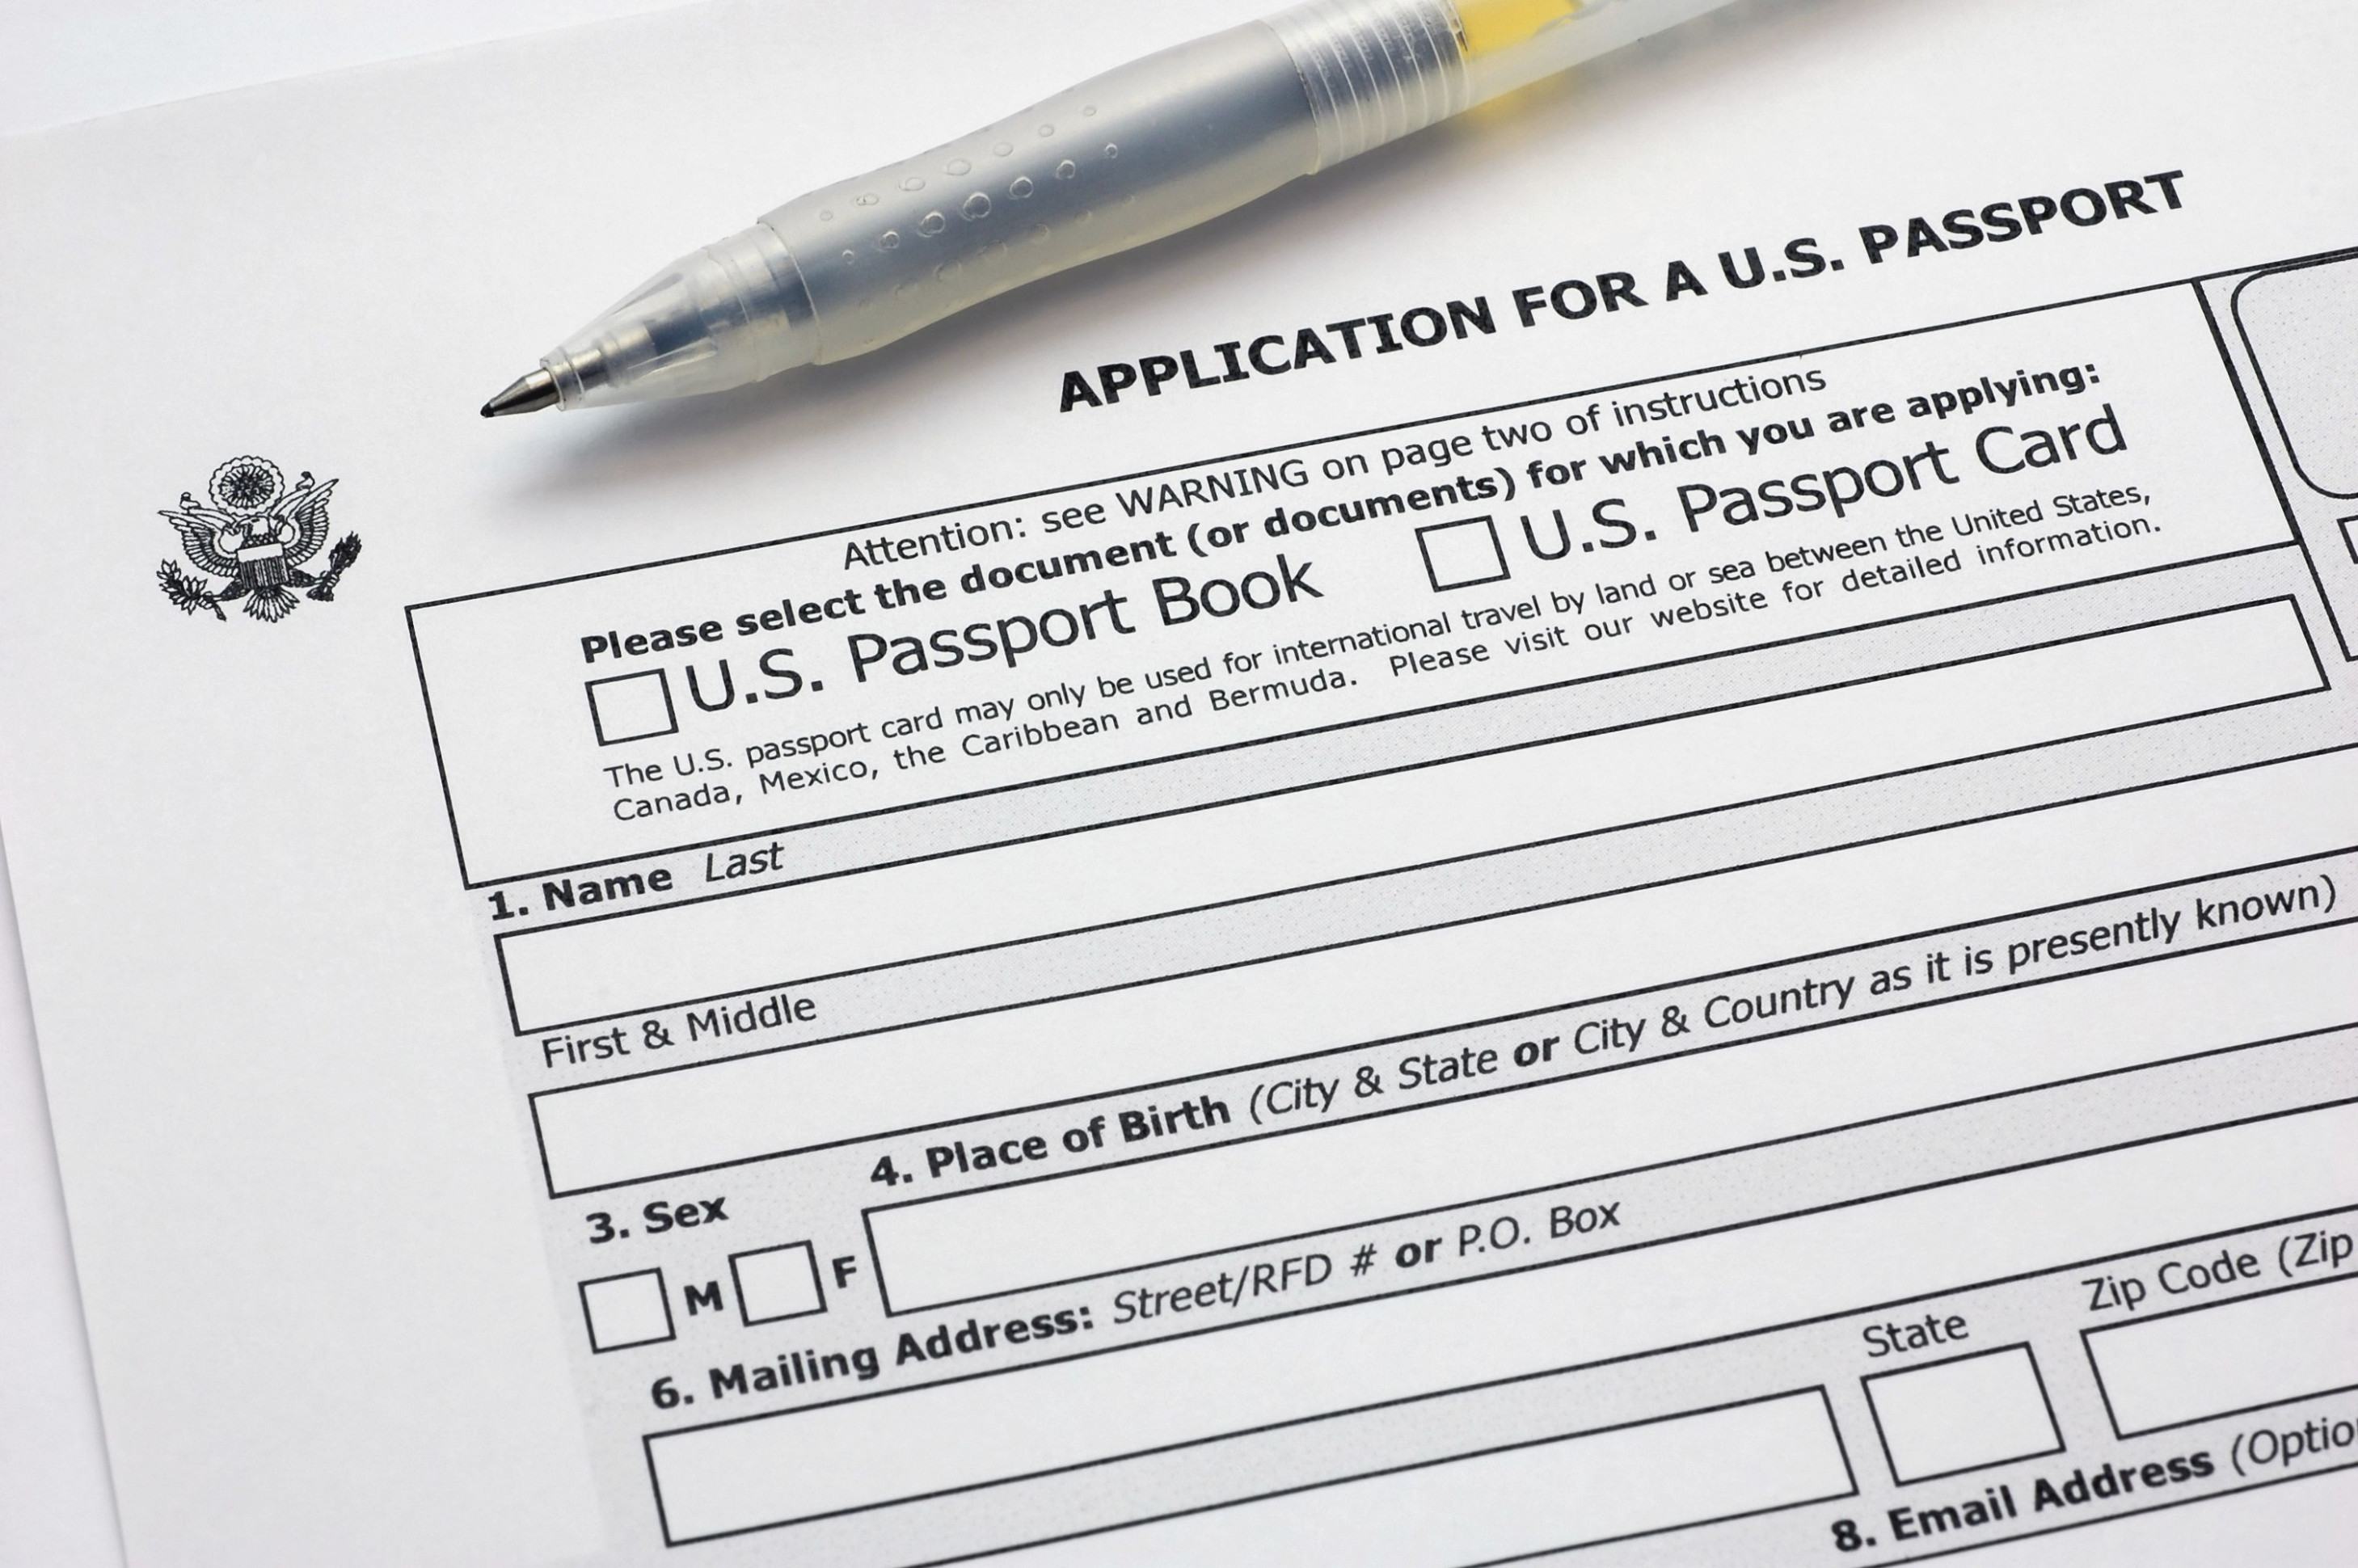 Passport Renewal Forms Post Office